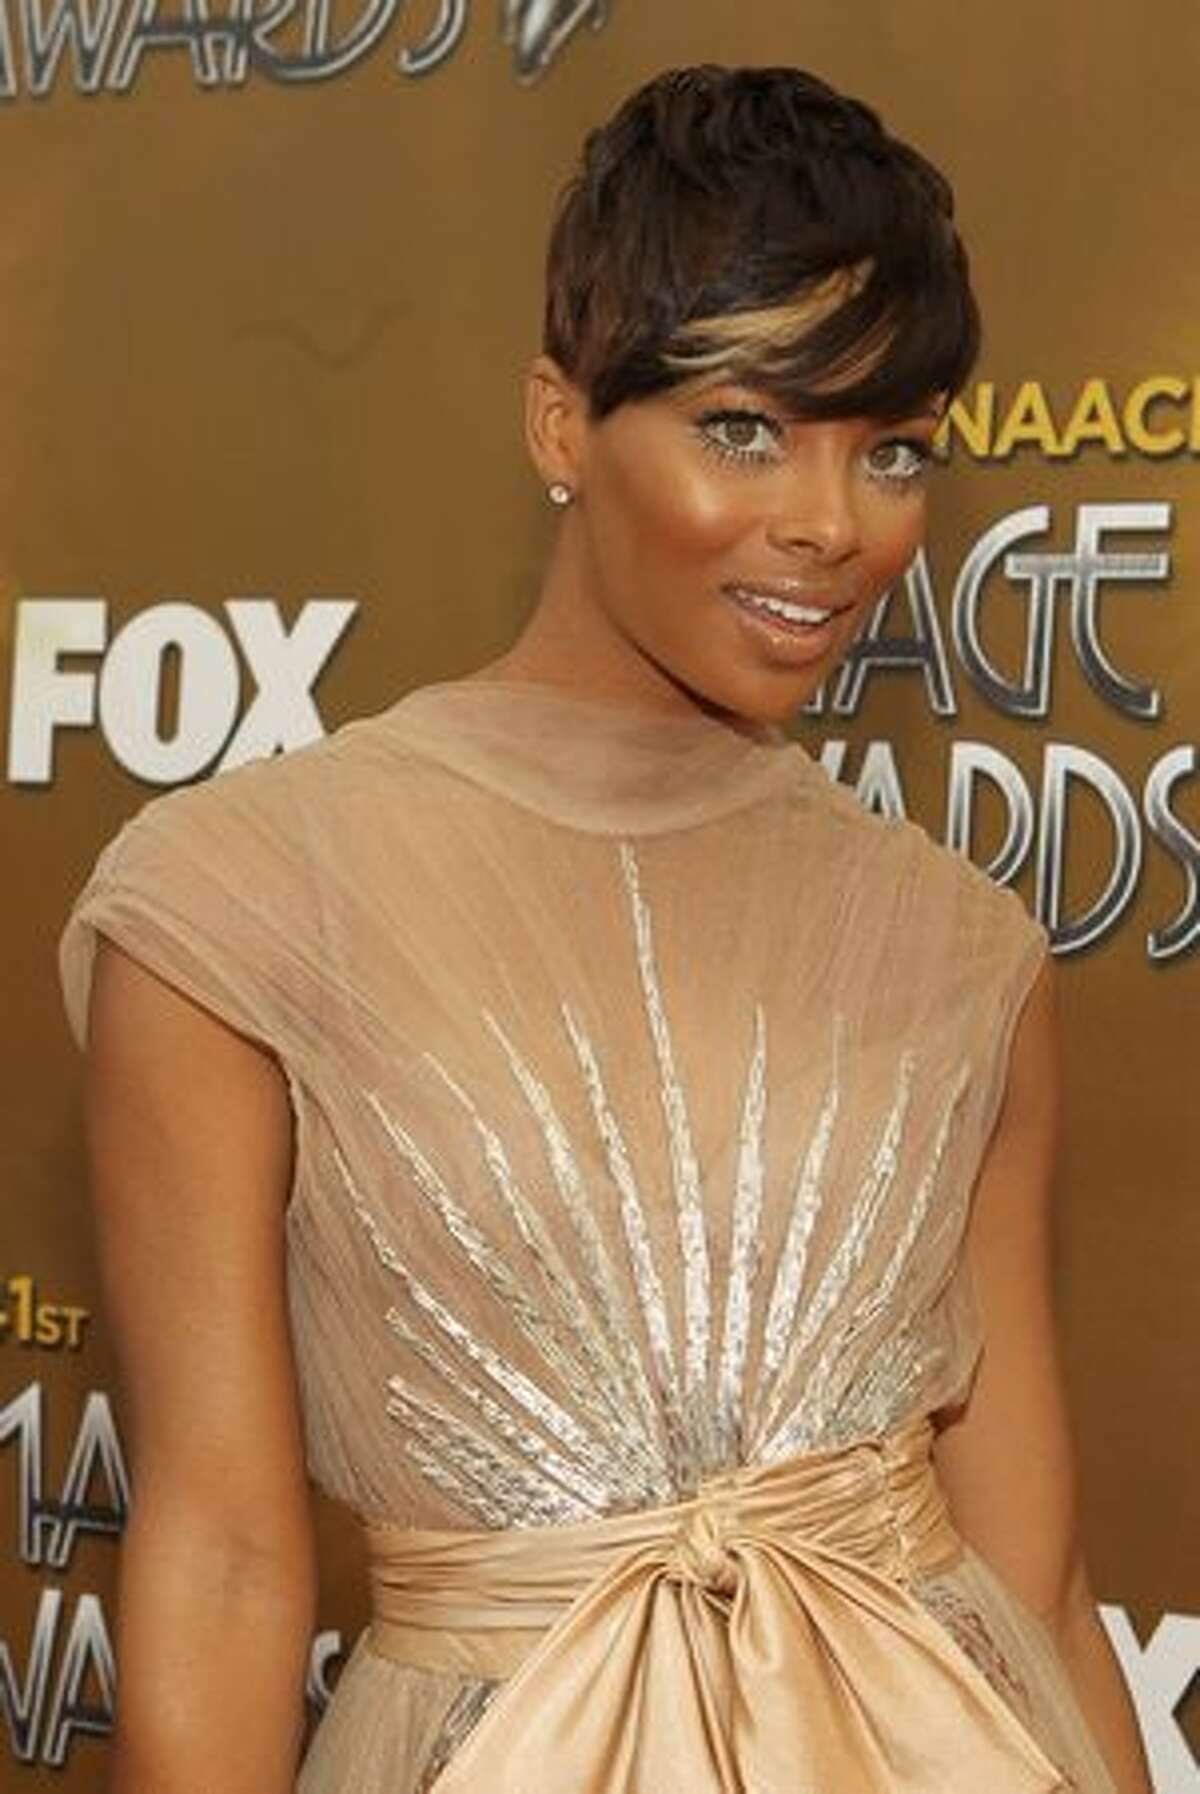 Actress Eva Marcille arrives at the 41st NAACP Image awards held at The Shrine Auditorium on February 26, 2010 in Los Angeles, California.